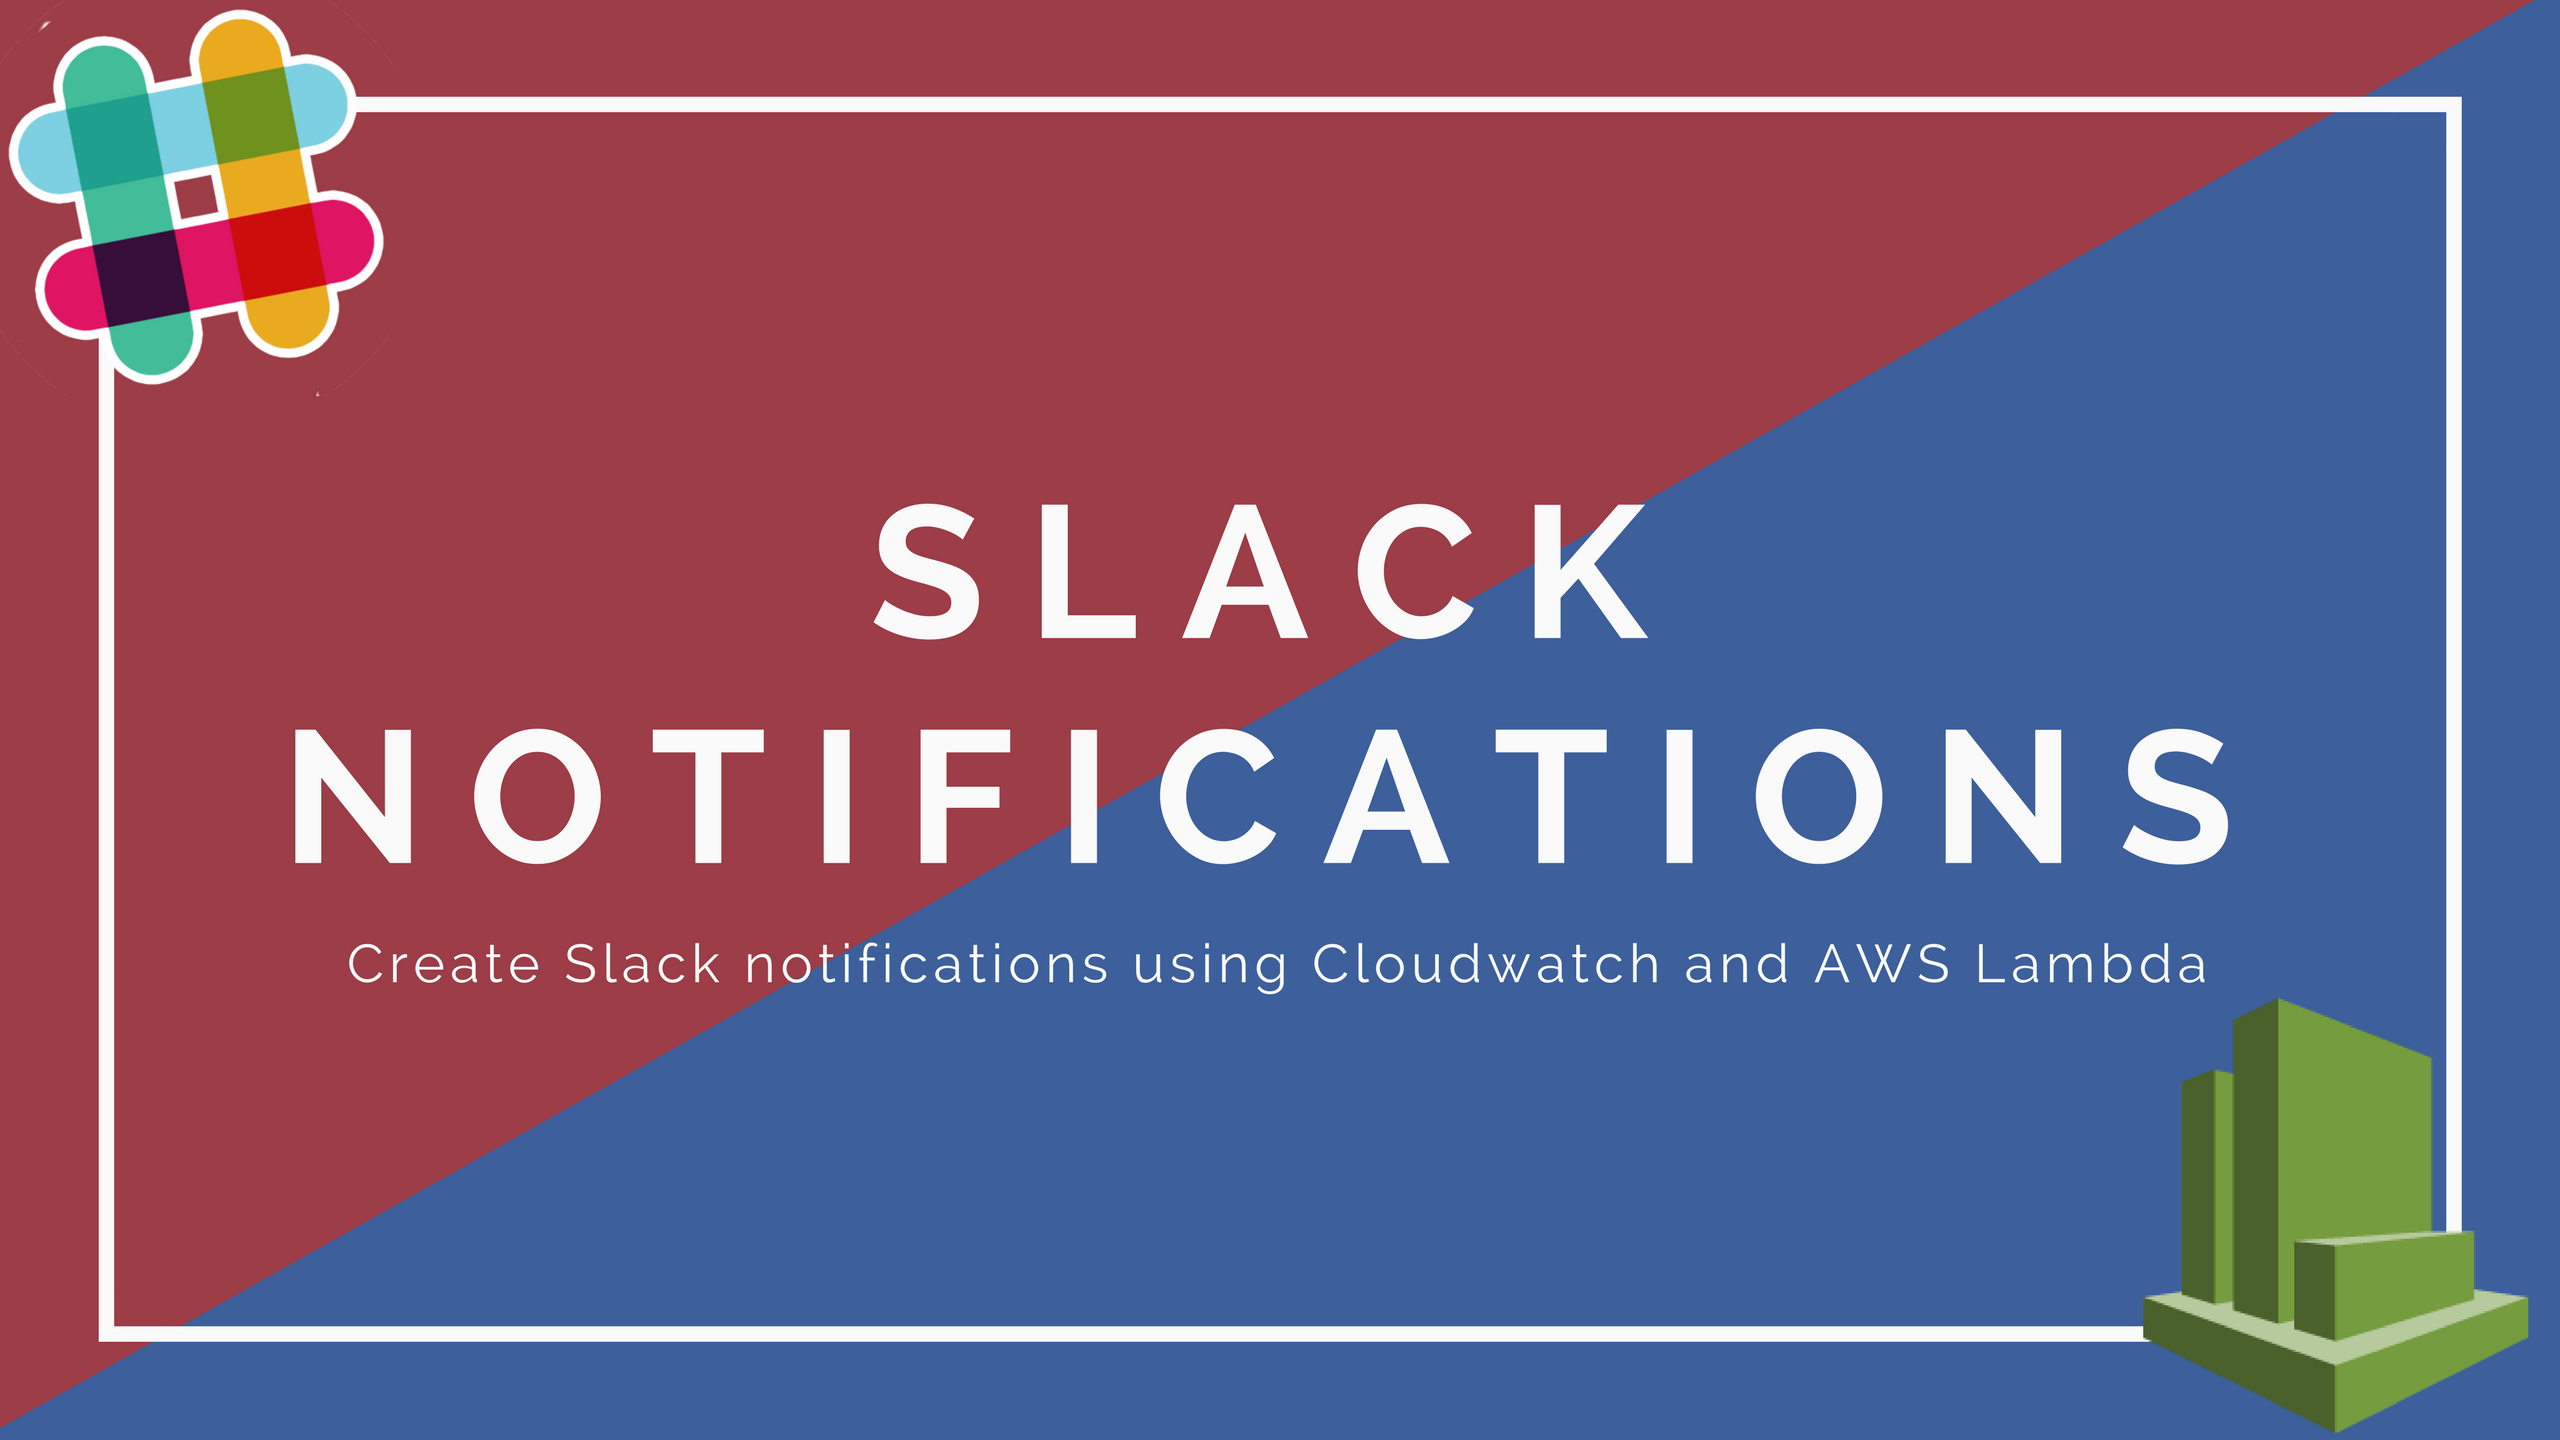 Create a Slack notification using CloudWatch Alarms and AWS Lambda